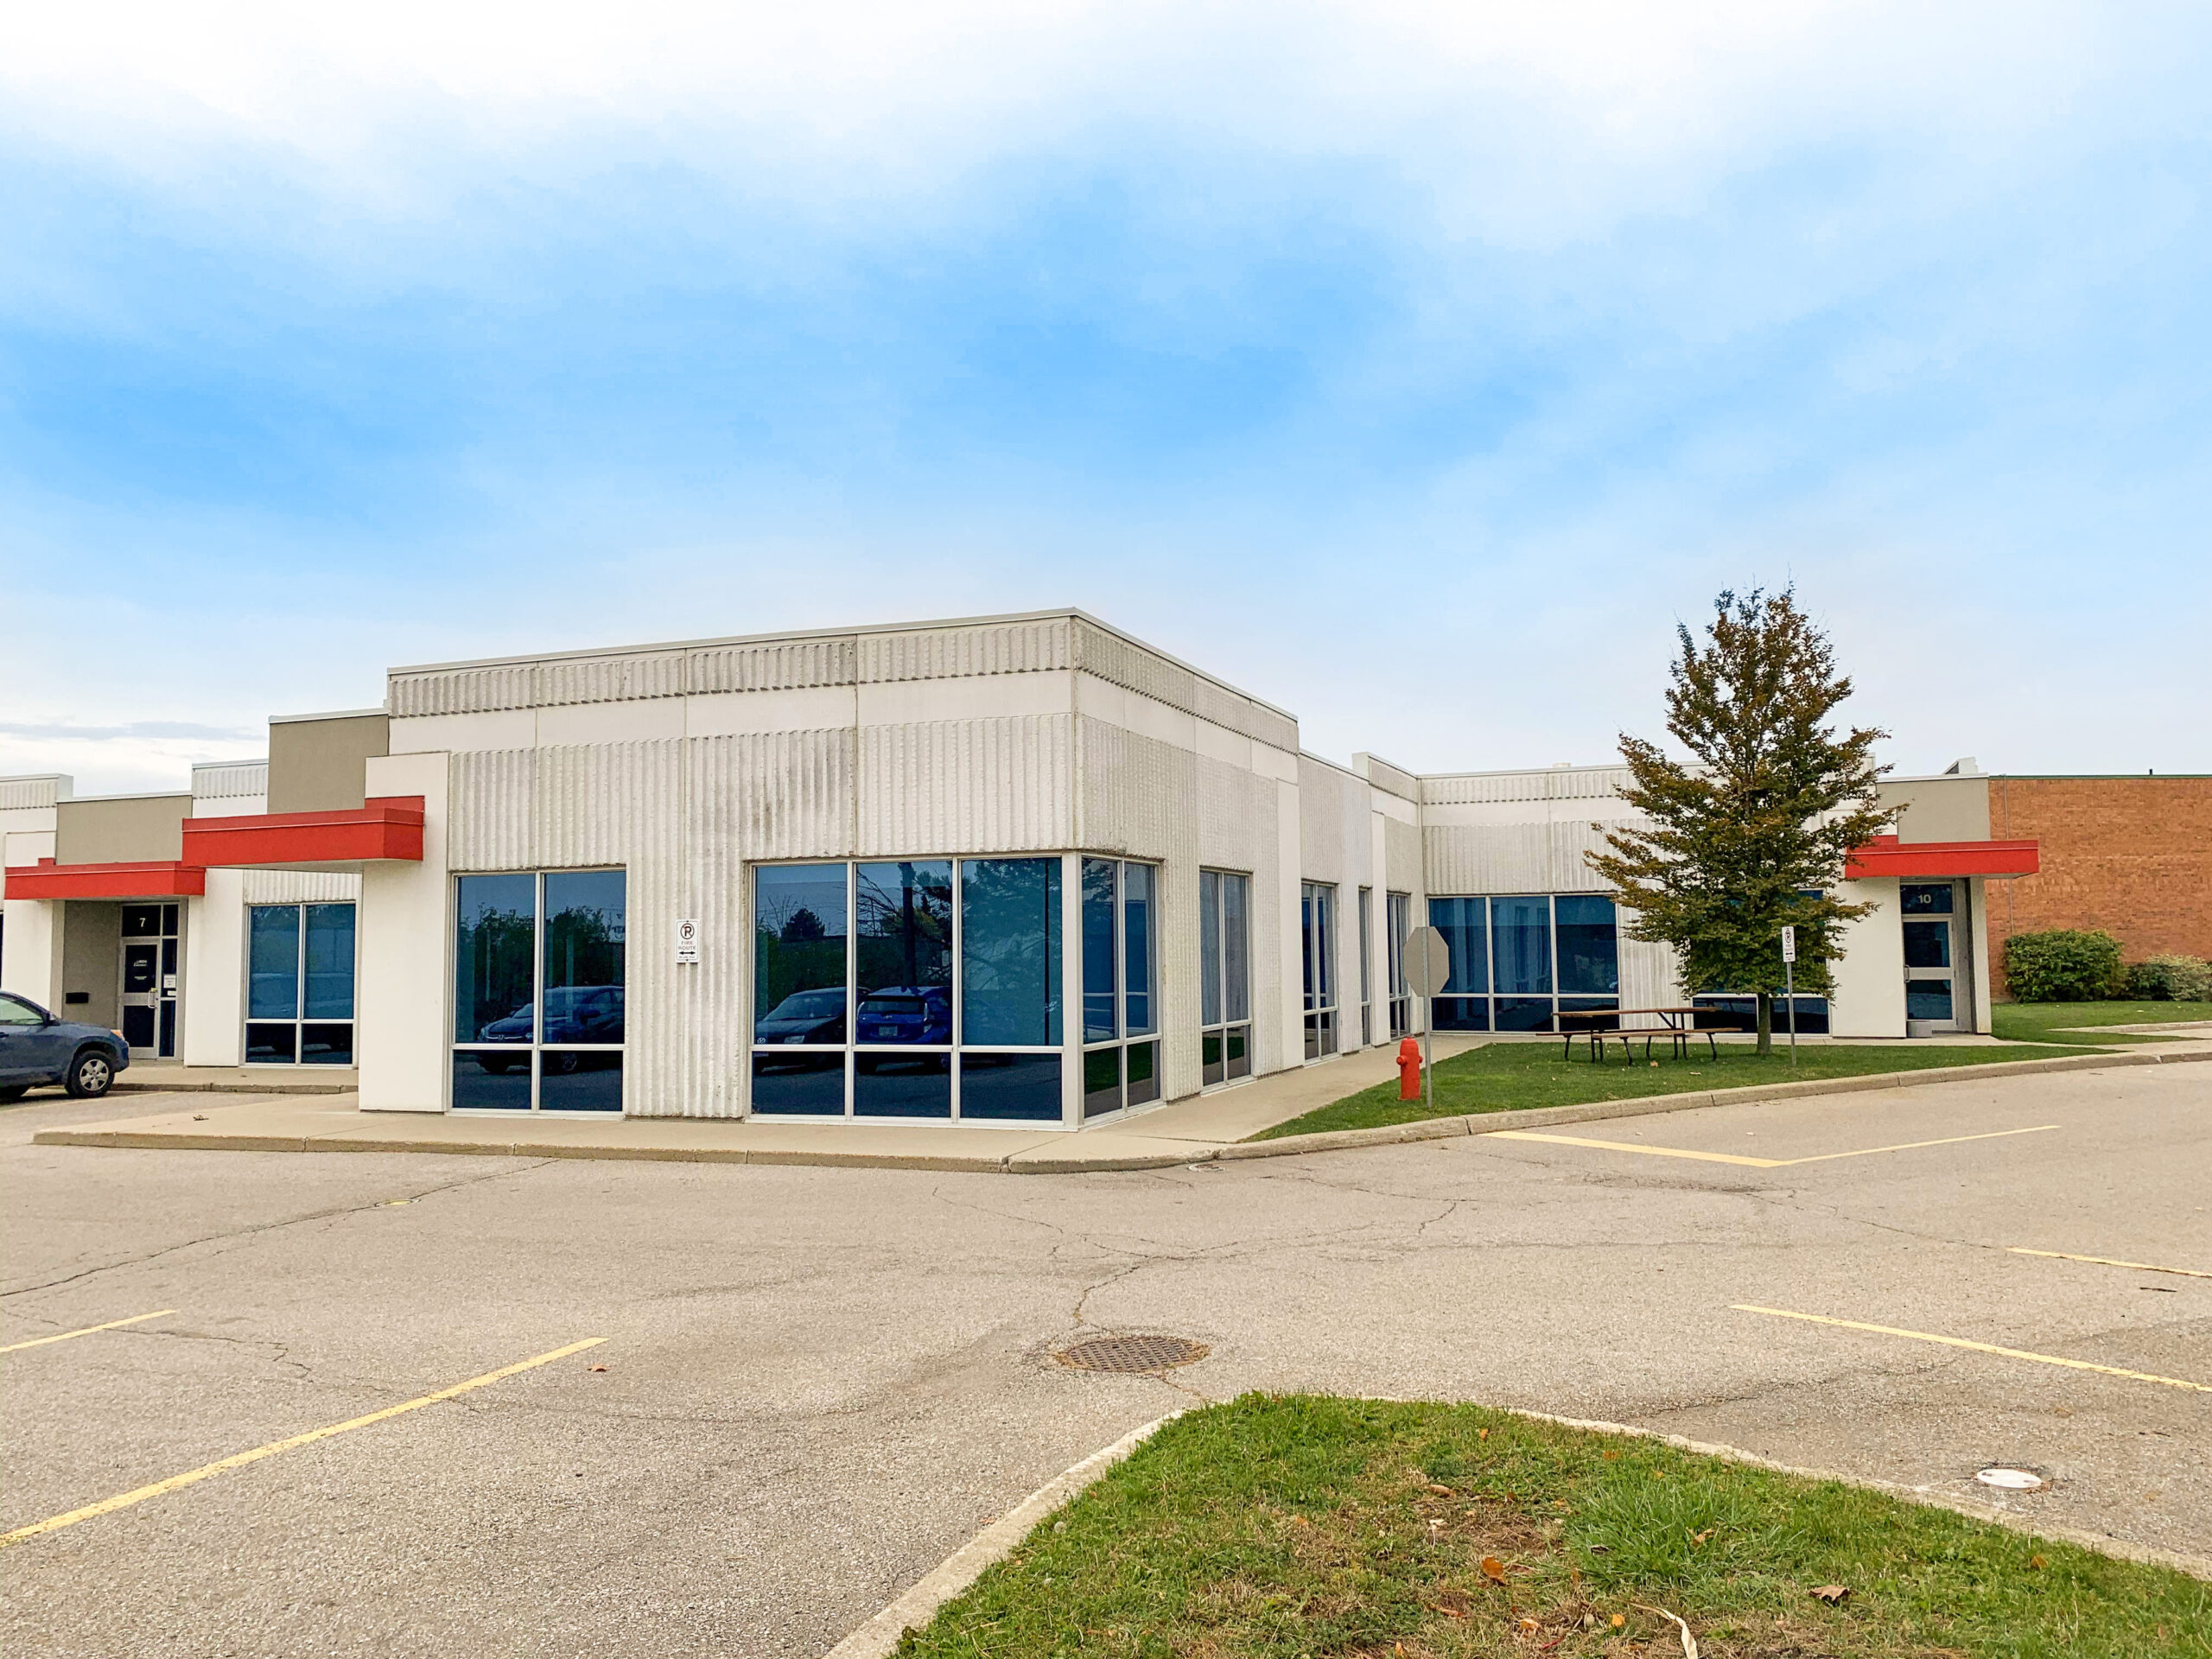 60 Bathurst Drive (Unit 8-10), Waterloo | Office Space for Sub-Lease